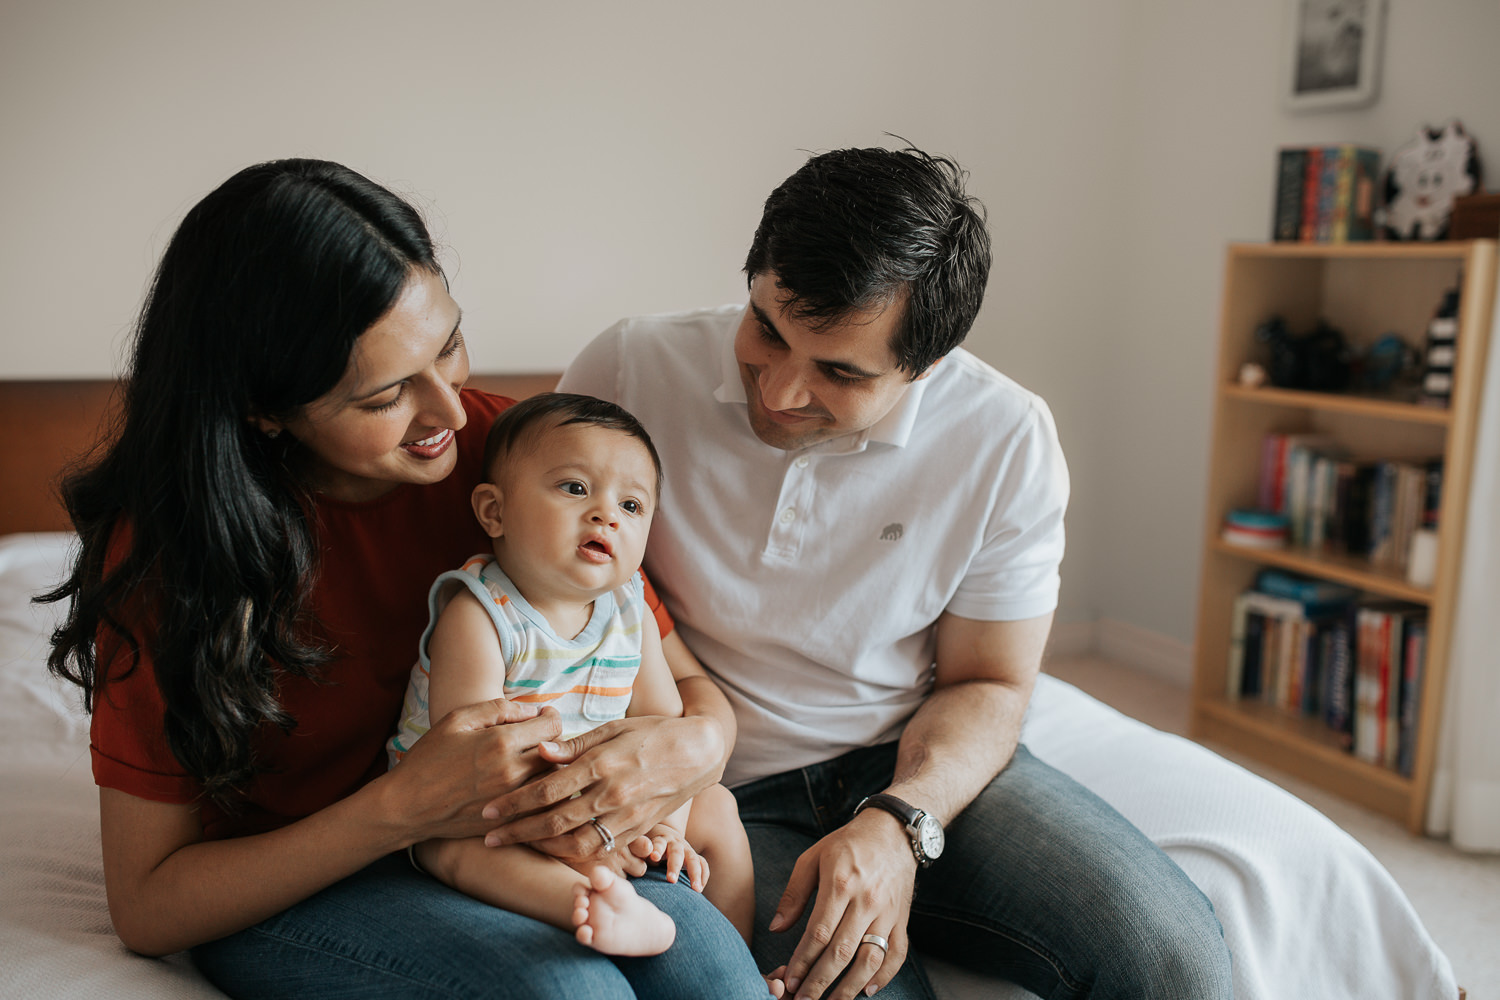 family of 3 sitting on bed, mom holding 8 month old baby boy in lap - Barrie Lifestyle Photos